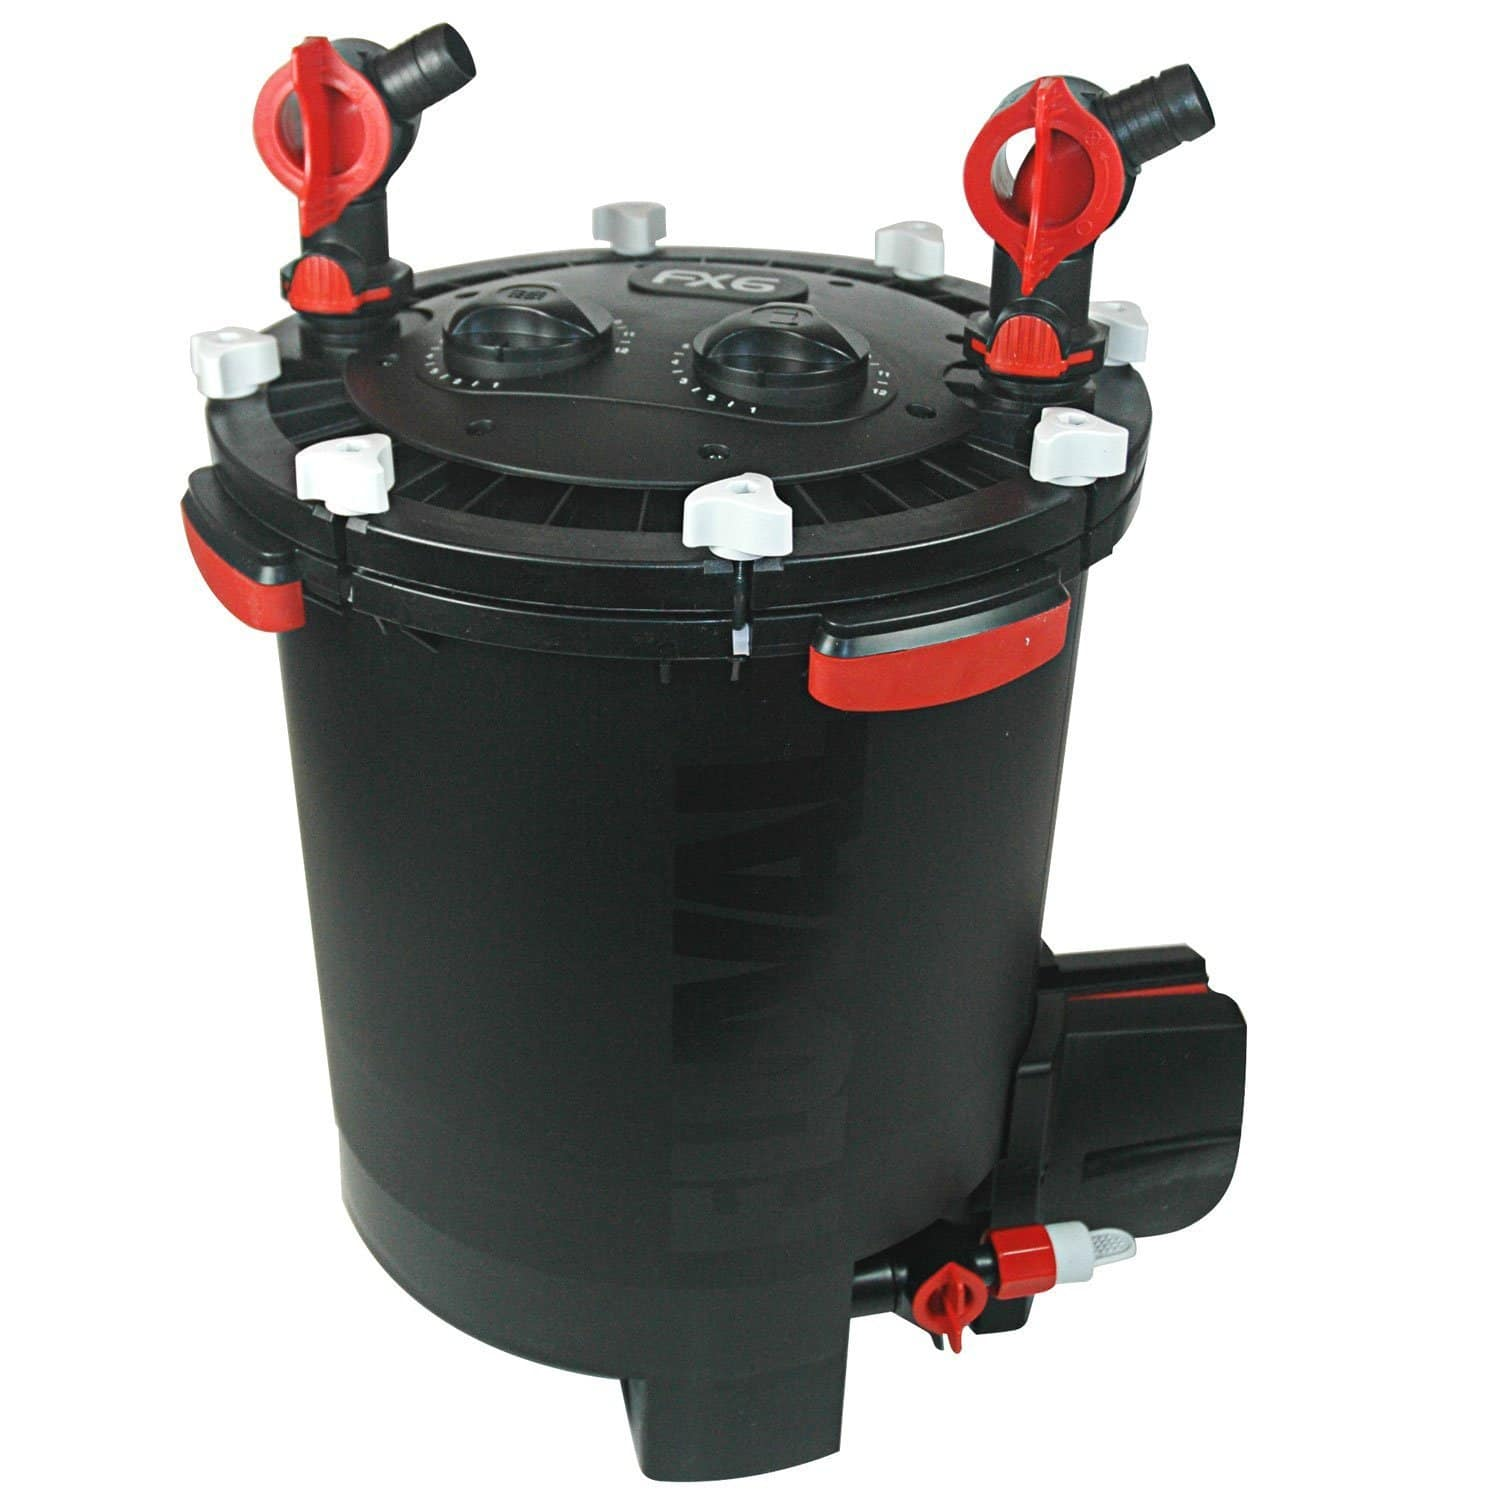 Fluval 400 gal aquarium canister filter page 3 for Petco fish tank filters